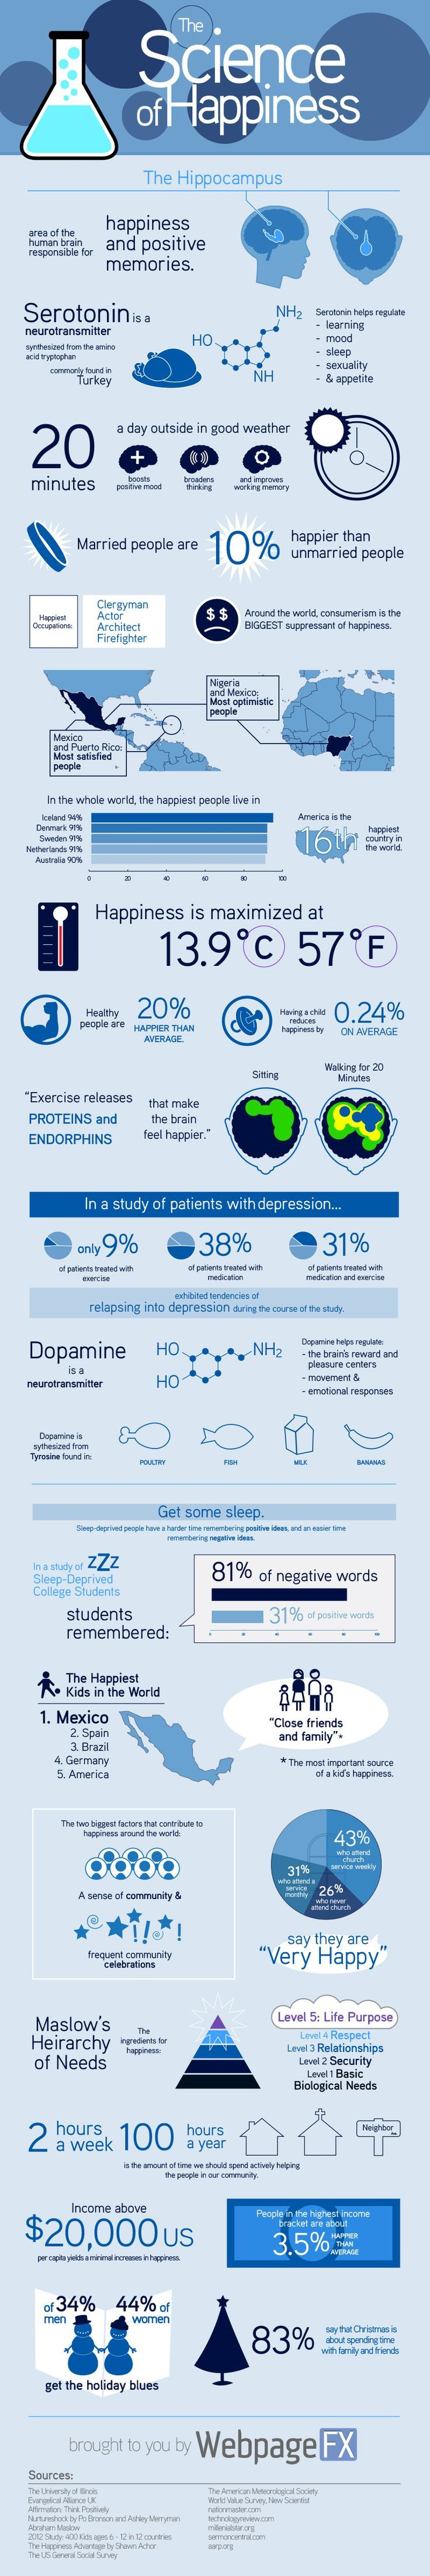 The science of happiness explained in one infographic. Visit http://www.counselinginsite.com/about.html for more information and resources from Counseling Insite. Knowledge is Power